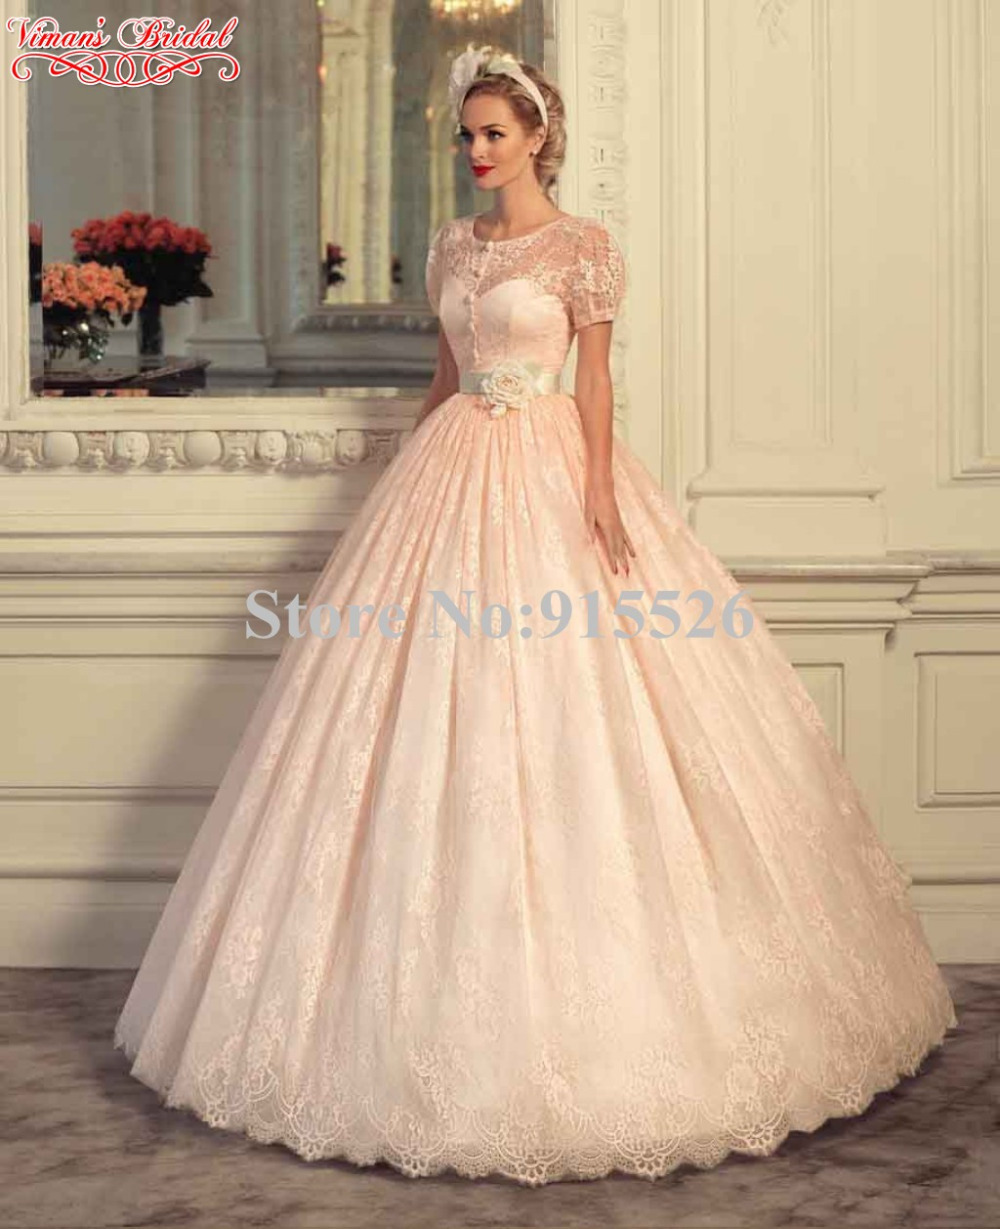 2015 vimans bridal peach colored wedding dresses appliques lace floor length ball gown vestidos with sashes free shipping ax37